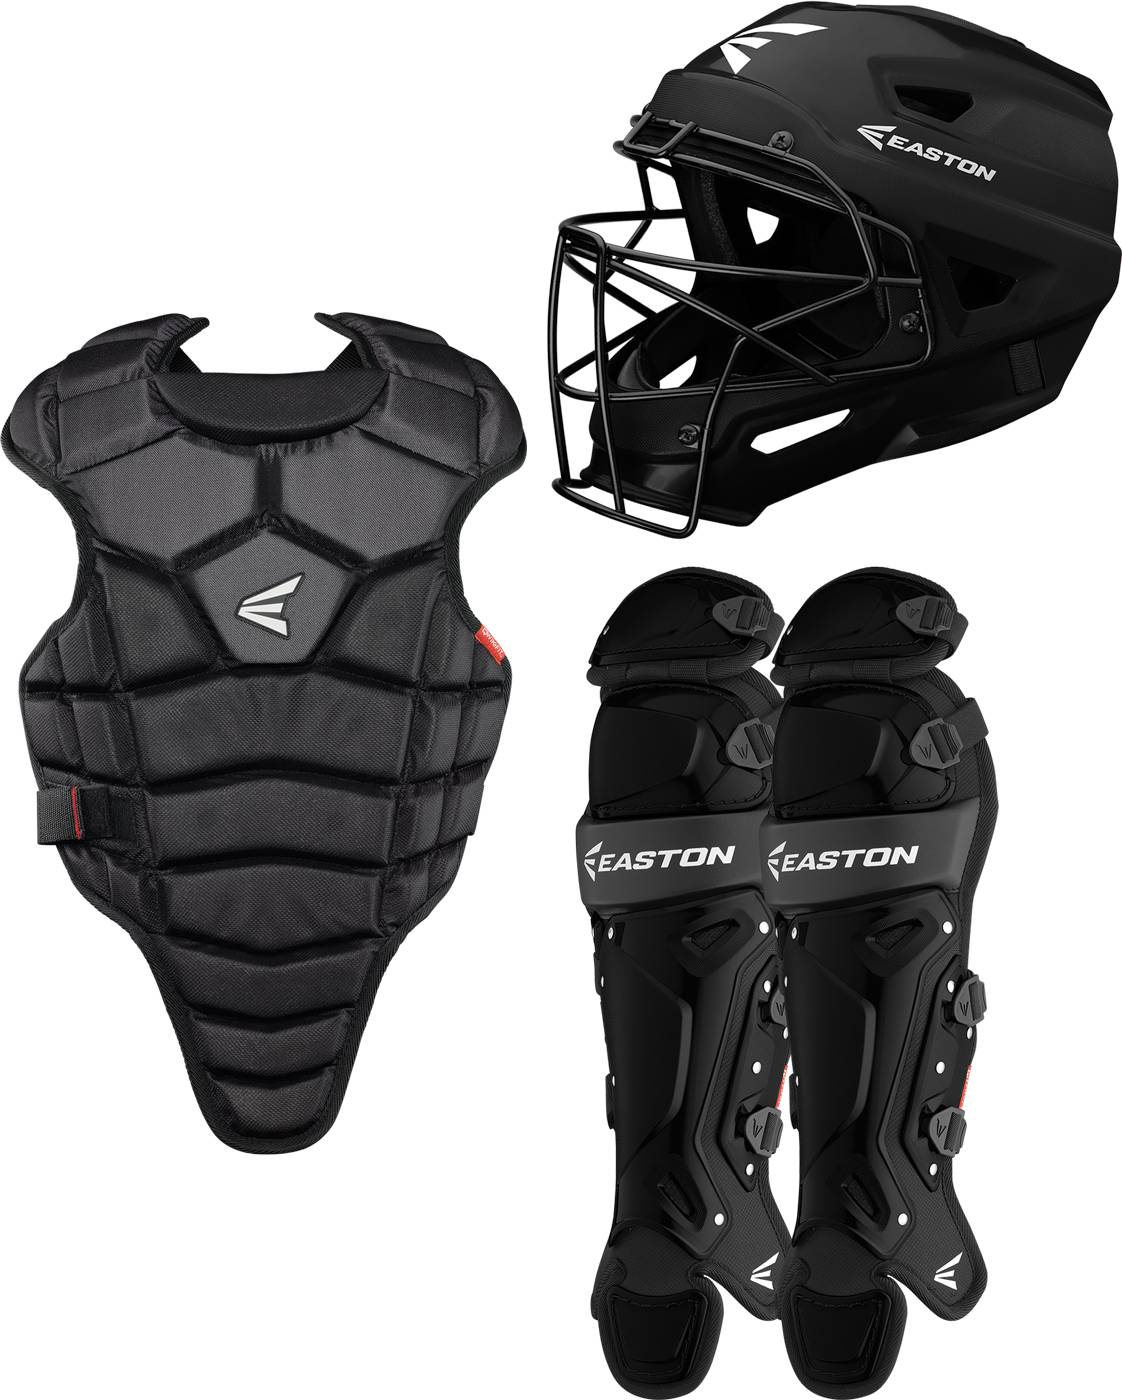 Easton M5 Qwikfit Youth Catcher's Gear Set, New